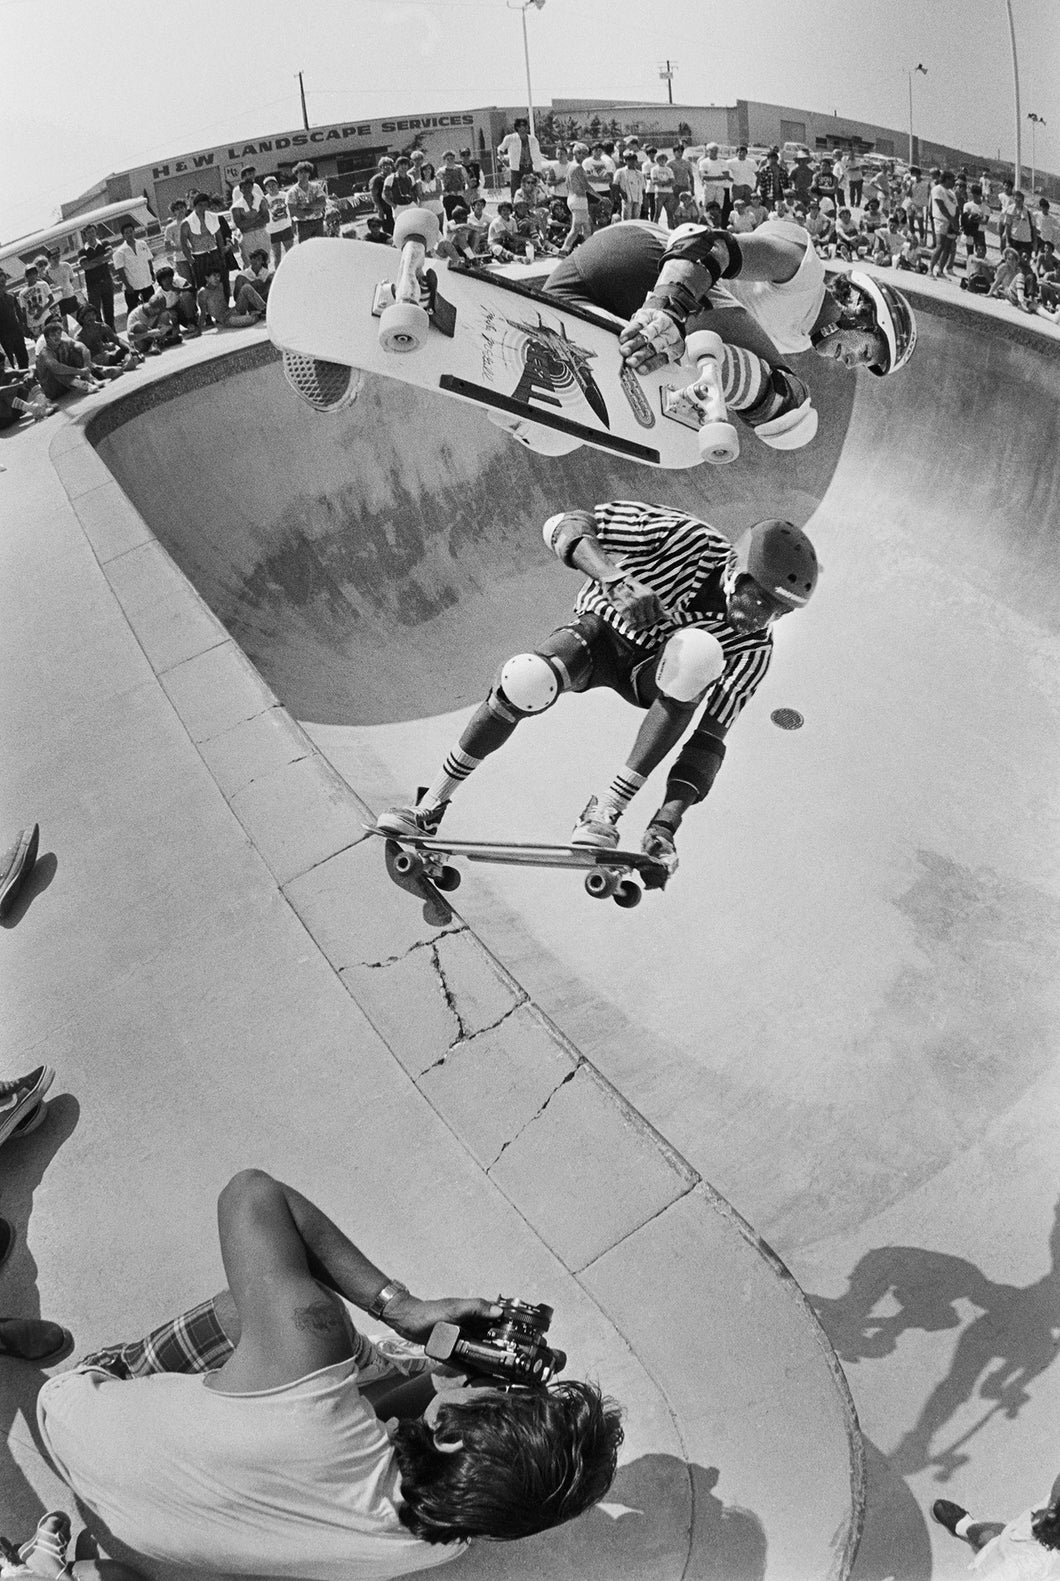 Steve Steadham and Mike McGill Doubles Upland 1985 Skateboarding Photo - J Grant Brittain